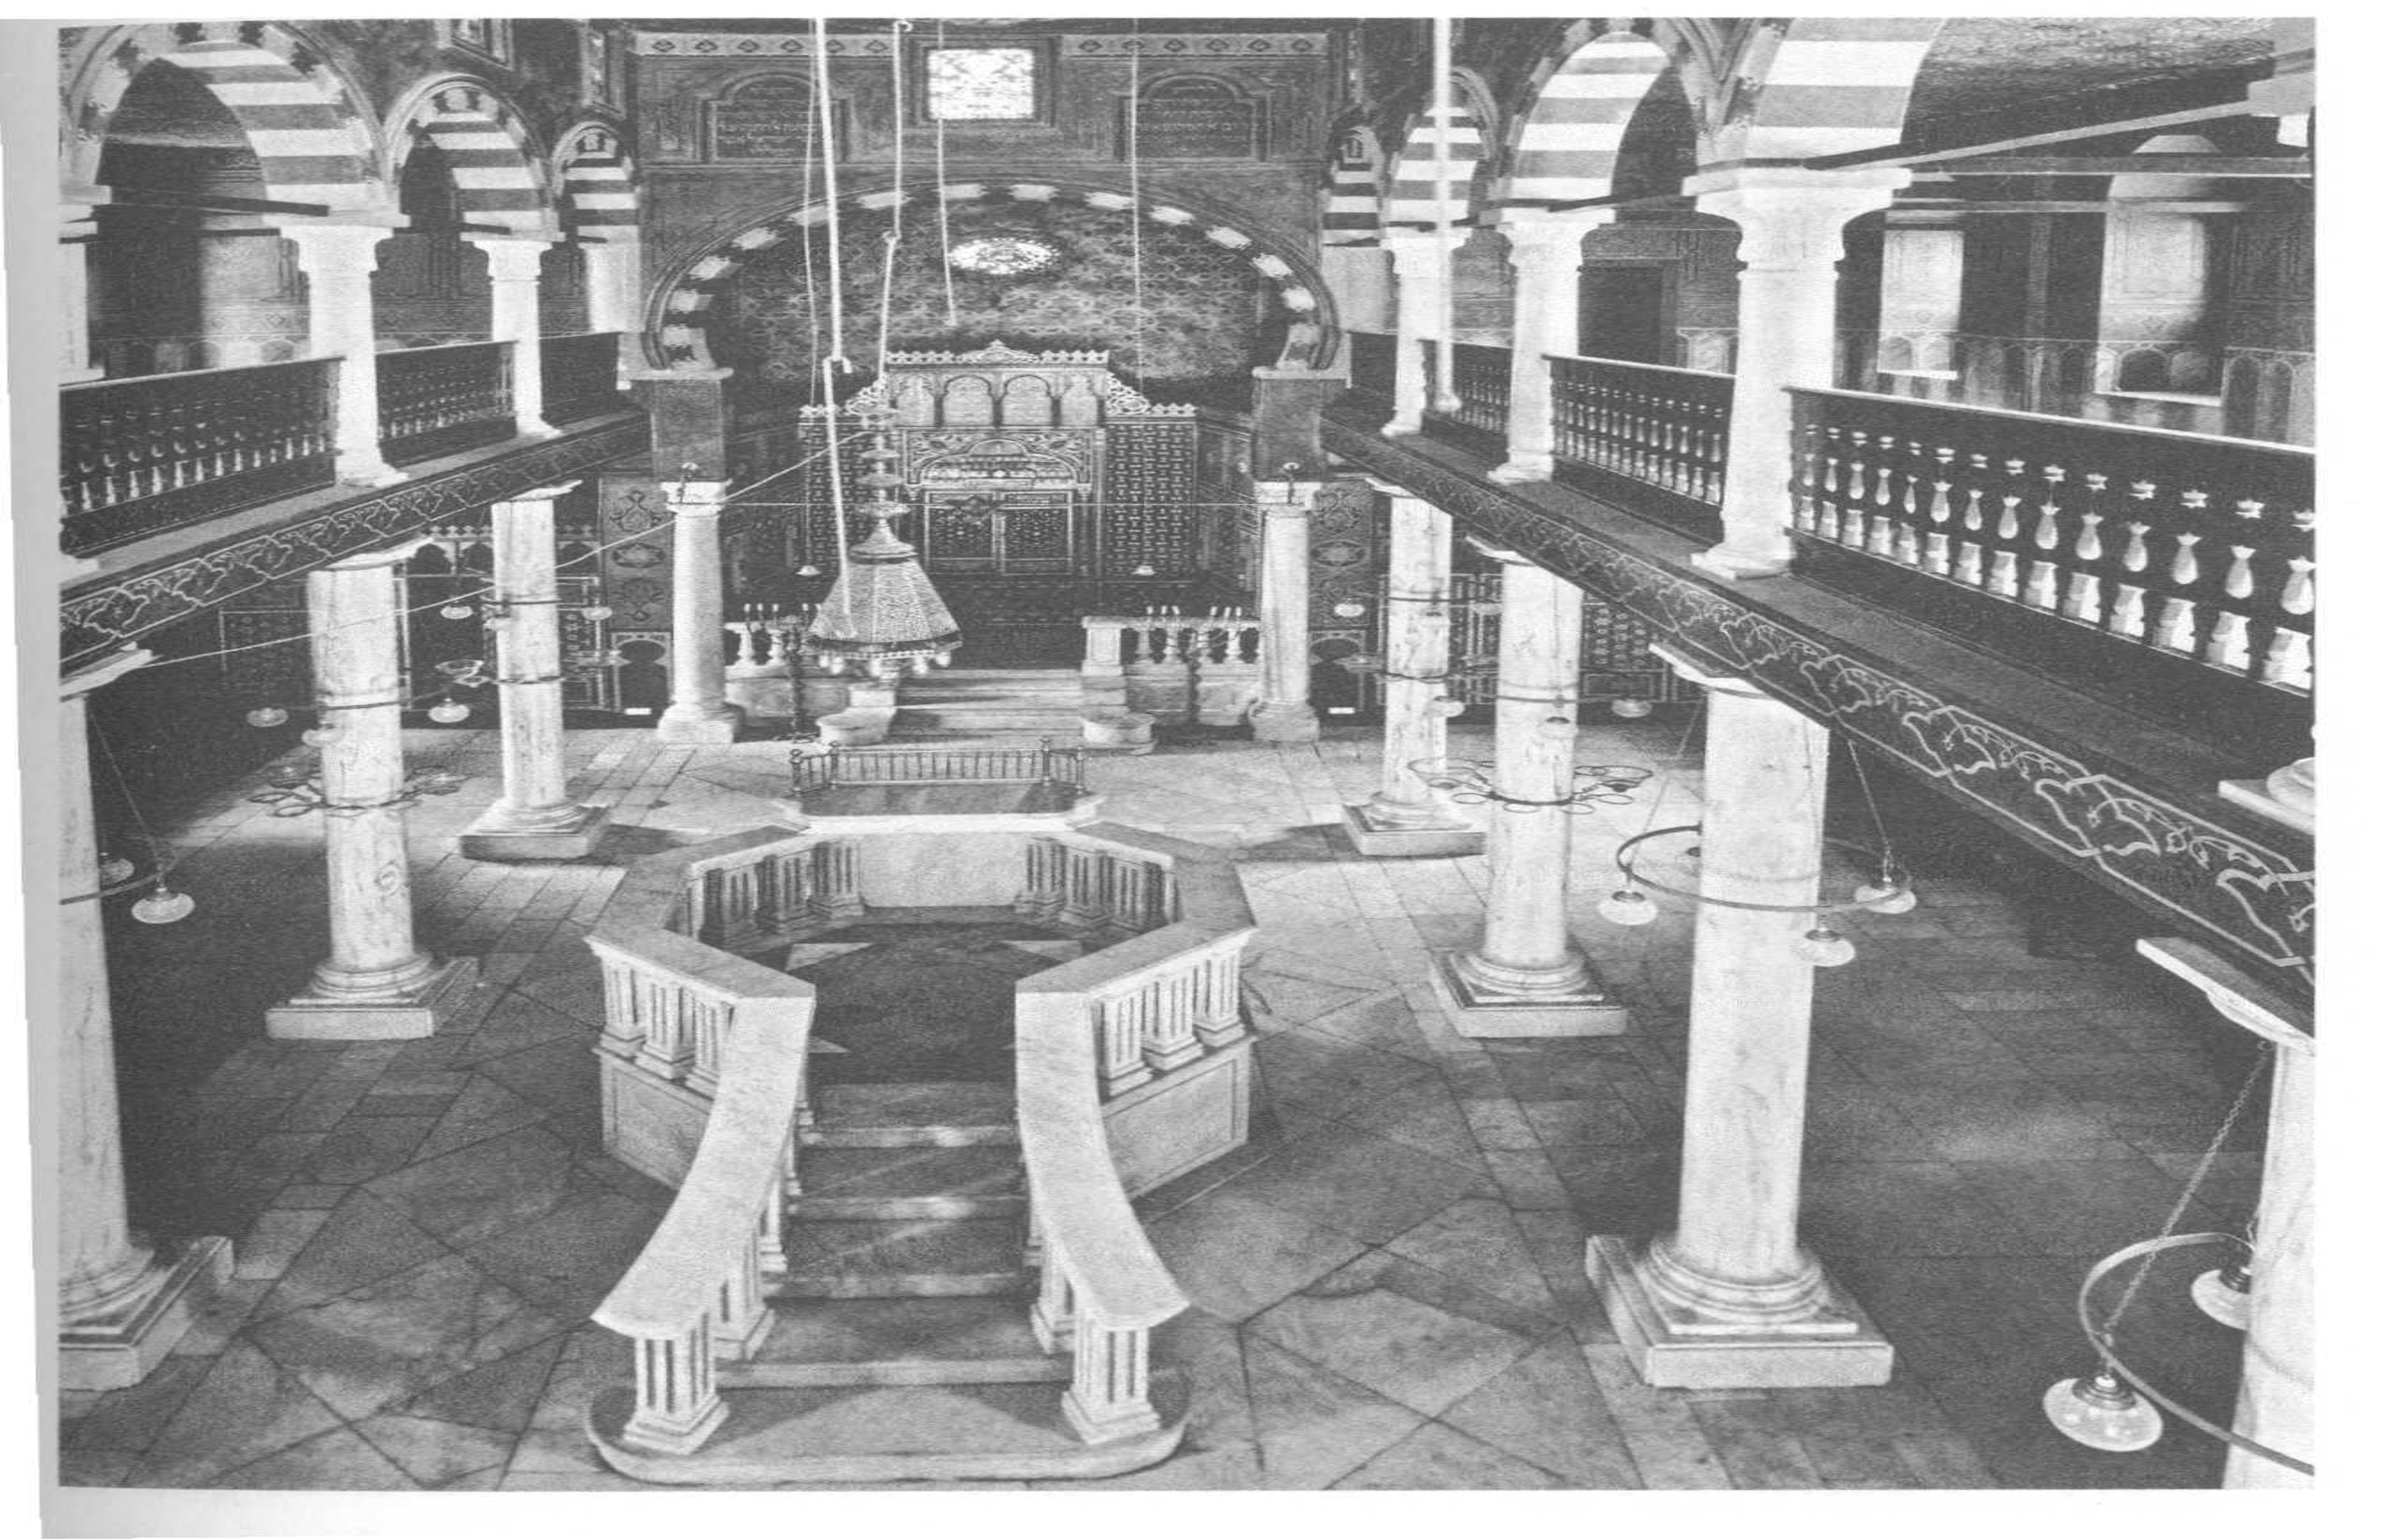 Photo of the Ibn Ezra Synagogue, the synagogue of Maimonides, in which the Cairo Geniza is found